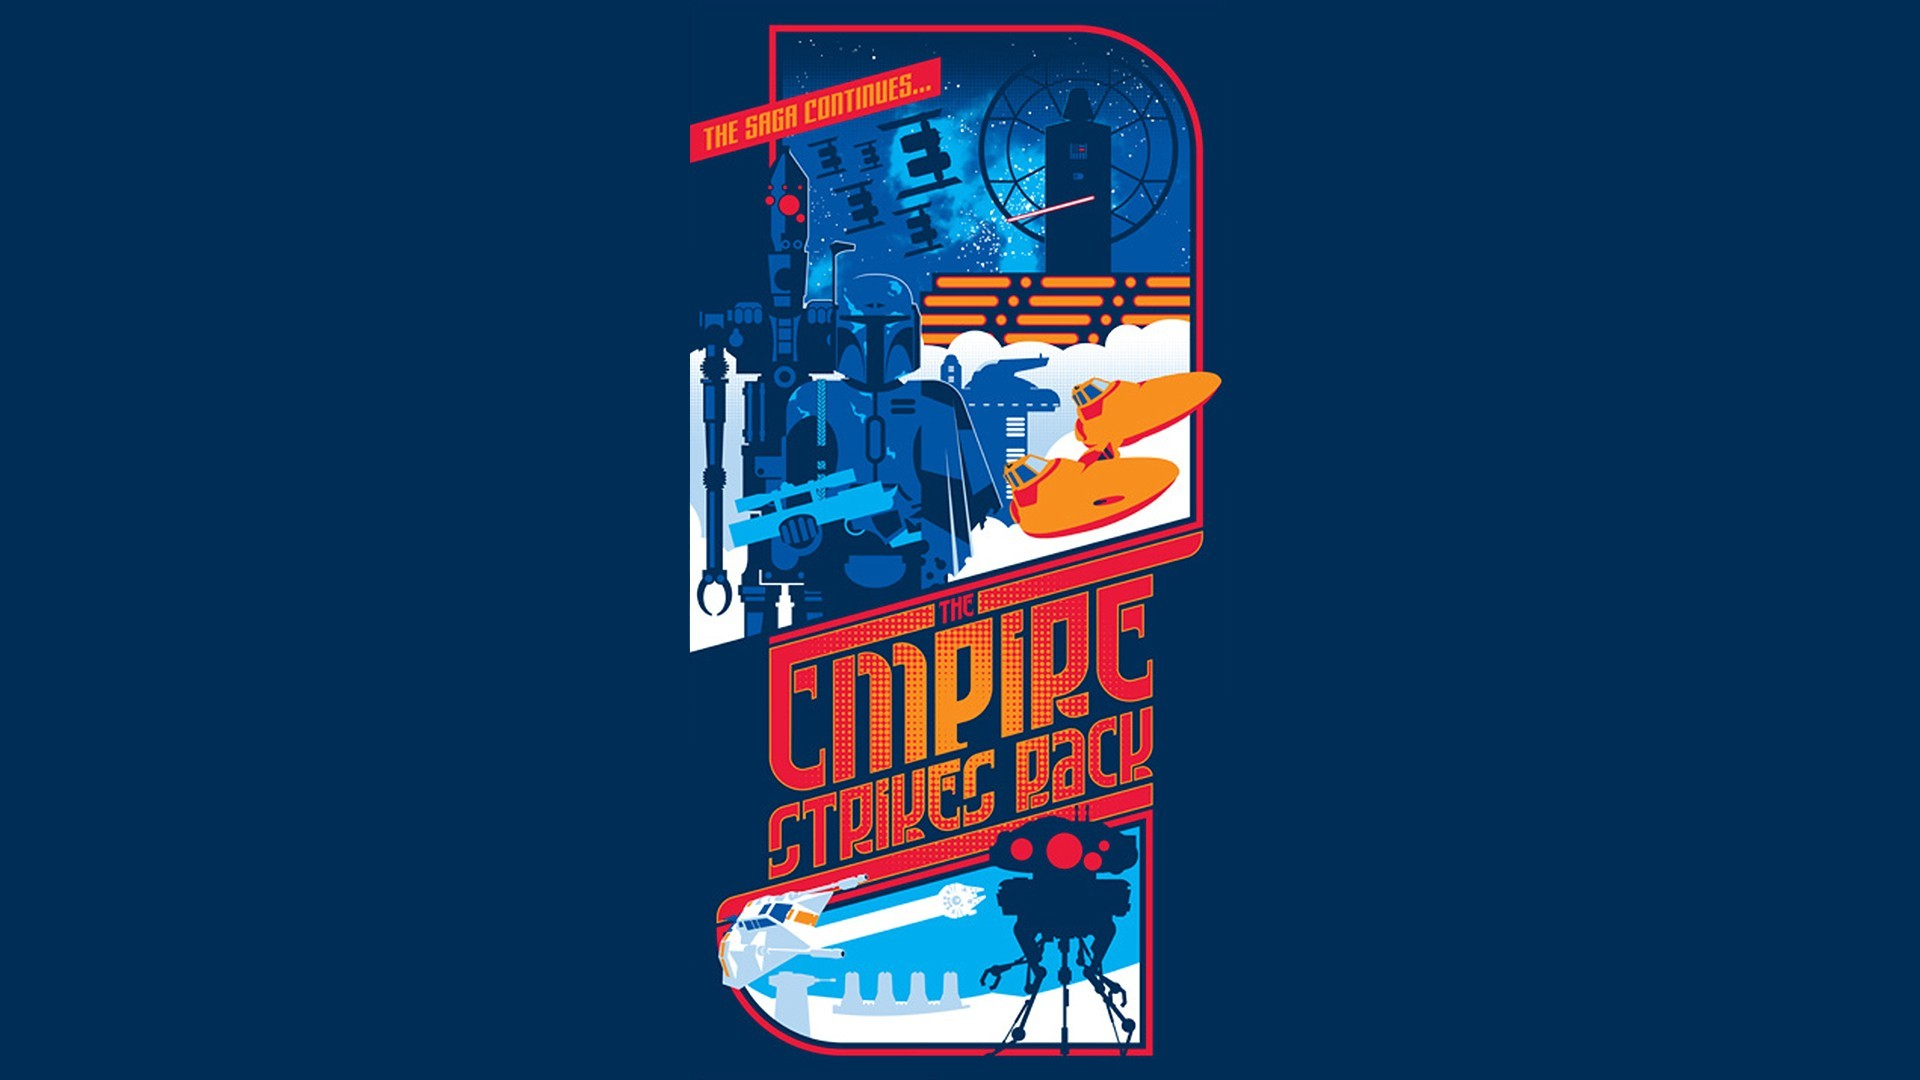 Star Wars Empire Strikes Back Wallpaper 71 Images